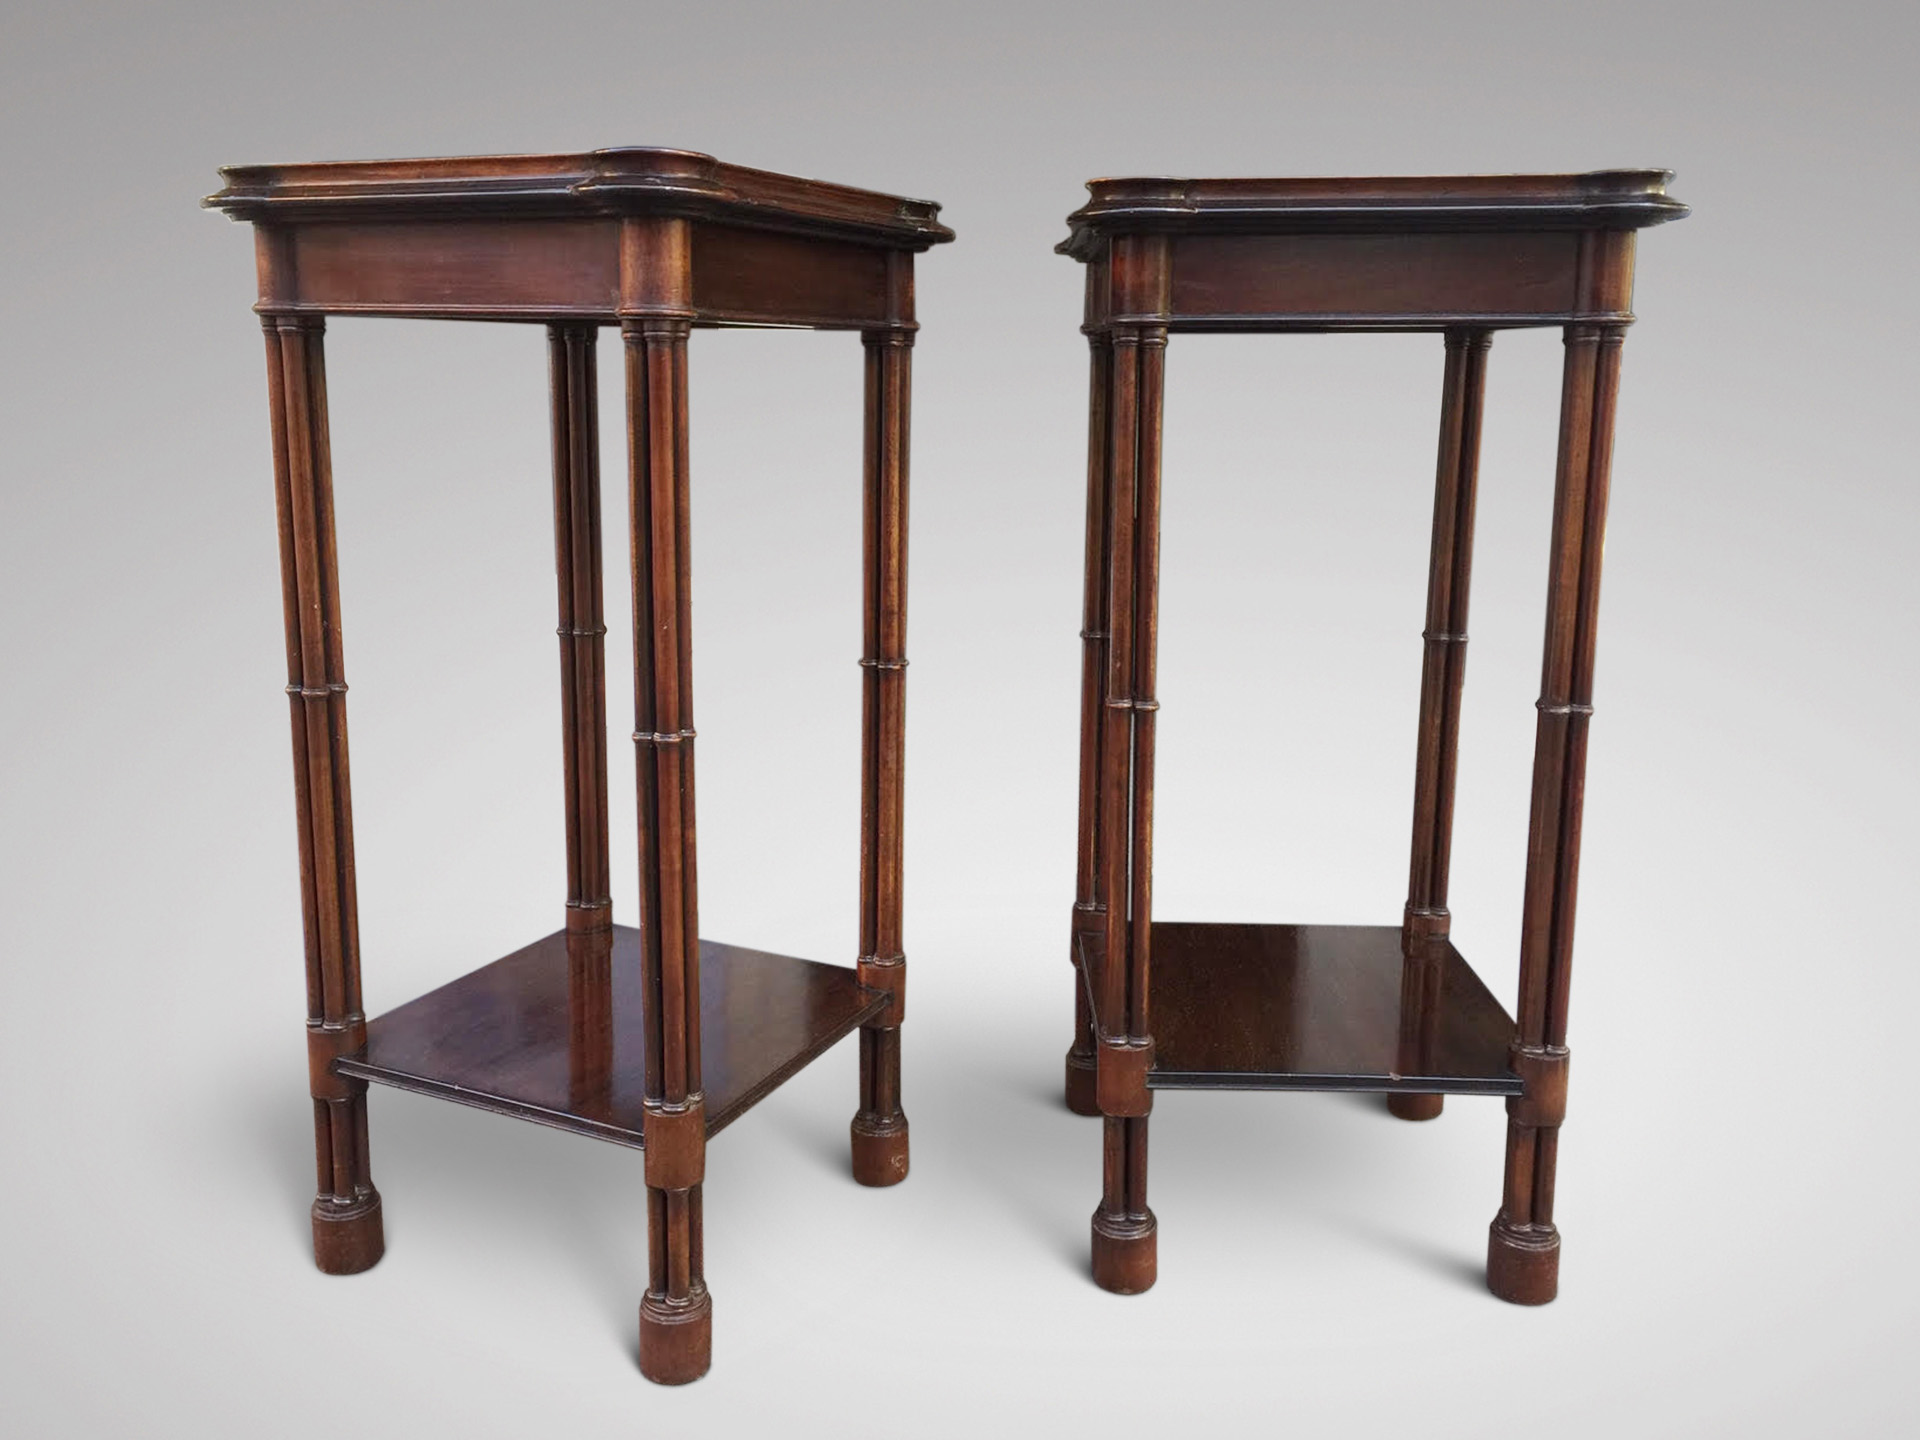 SOLD/19C PAIR OF MAHOGANY OCCASIONAL TABLES